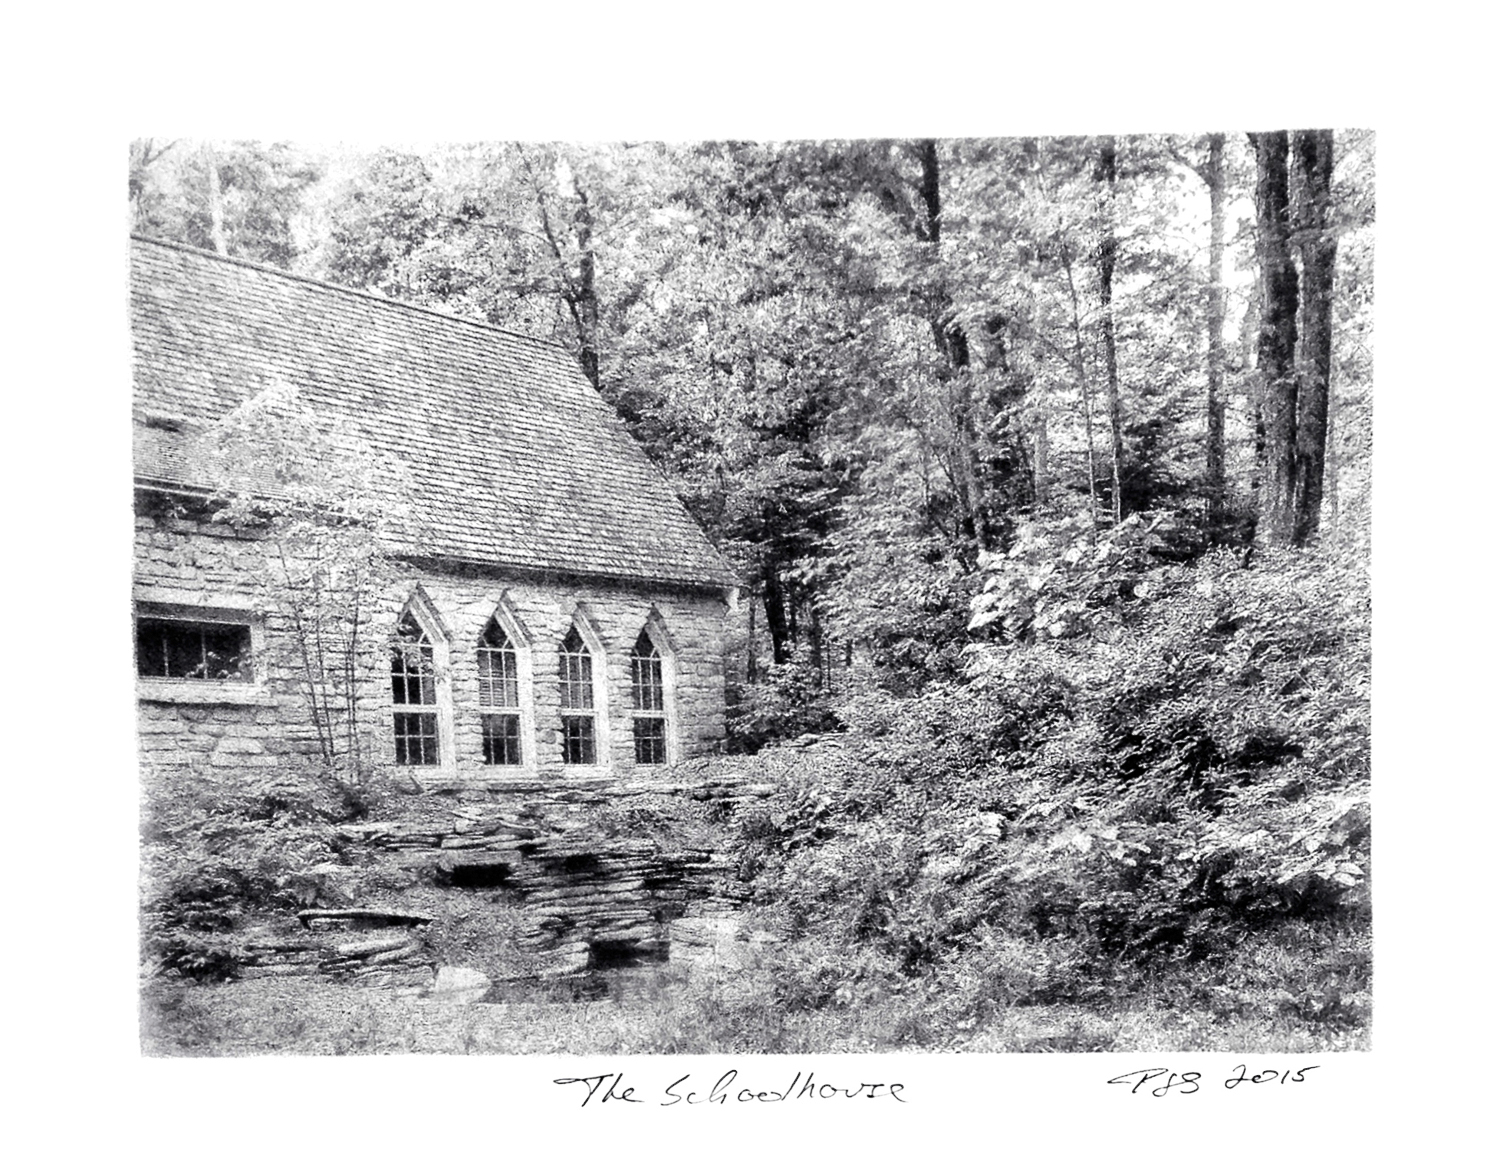 PJ Sturdevant, The Schoolhouse, December, 2015. Bromoil photographic print on FOMABROM Variant IV 123 double weight silver bromide fiber base paper using black lithographic ink, 10½ x 8 inches. Courtesy of the artist